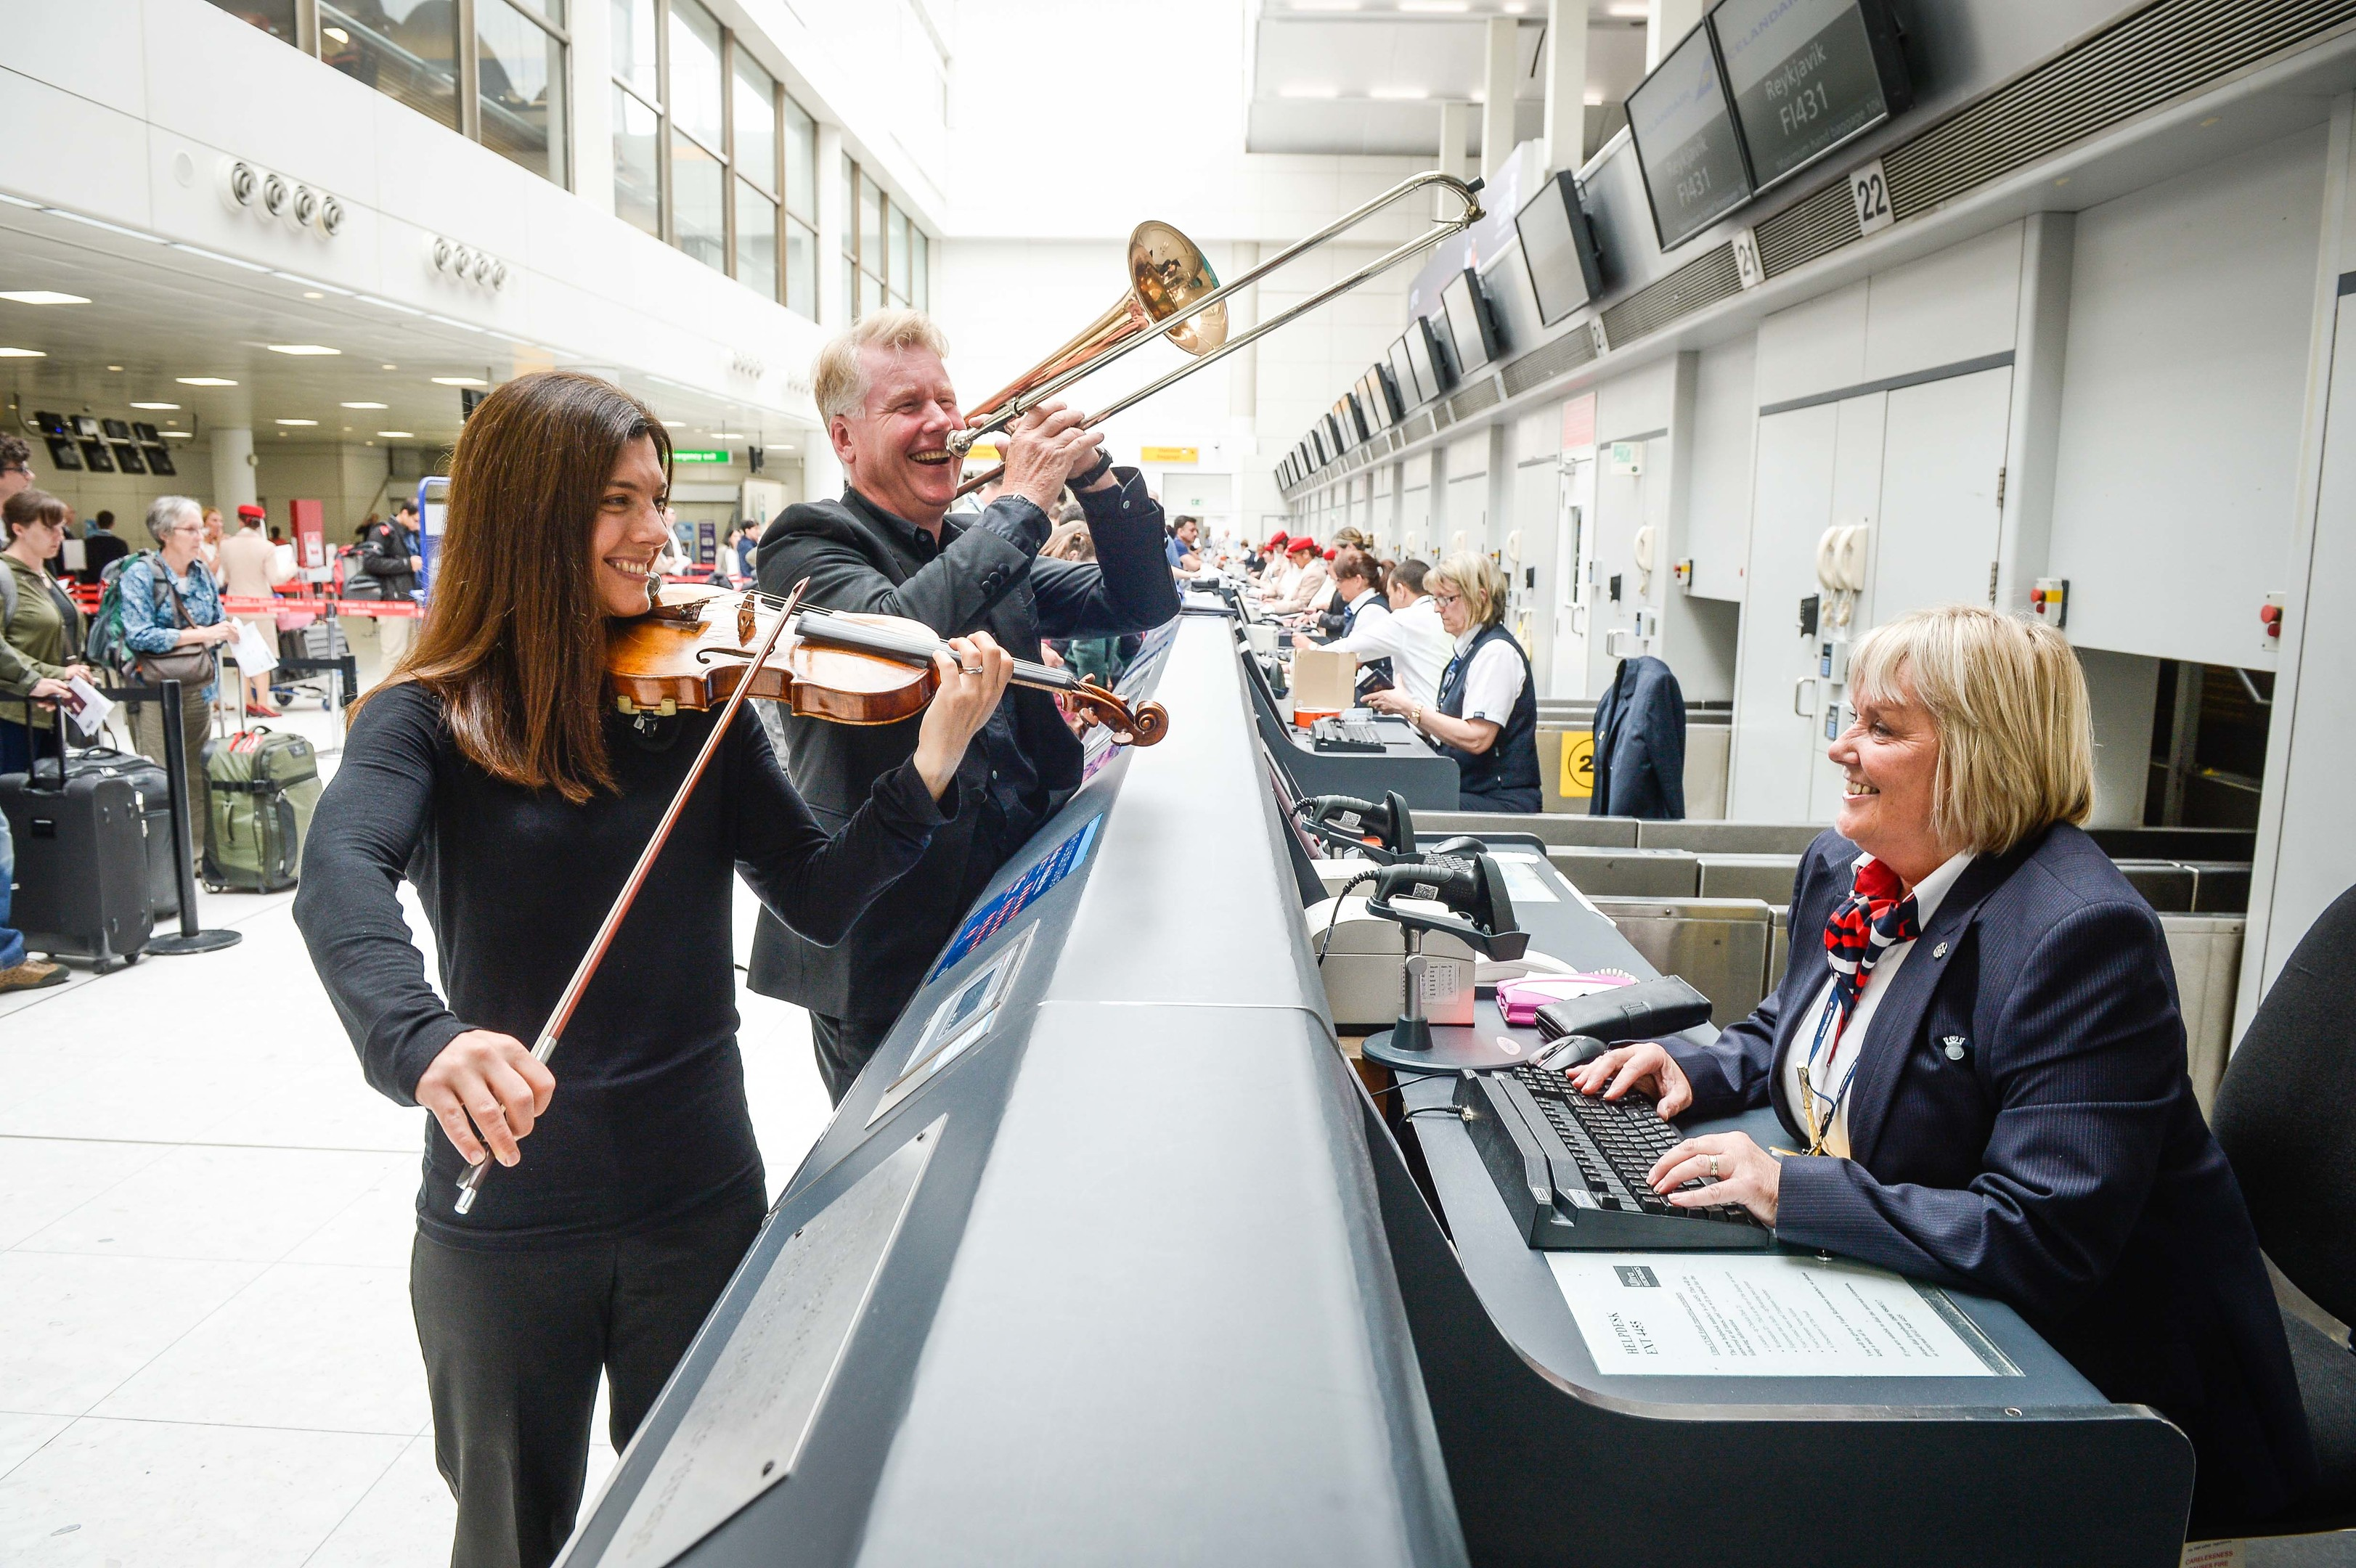 Passengers at Glasgow Airport today were invited to exercise their voices with the backing of the Royal Scottish National Orchestra (RSNO) and accompanied by dancers from Dance House Glasgow, as the nationÕs popular air terminal marks its 50th anniversary. l-r RSNO musicians Susannah Lowdon (Violin) and Lance Green (Trombone) with British Airways check in staff Linda Friel (Nick Ponty)